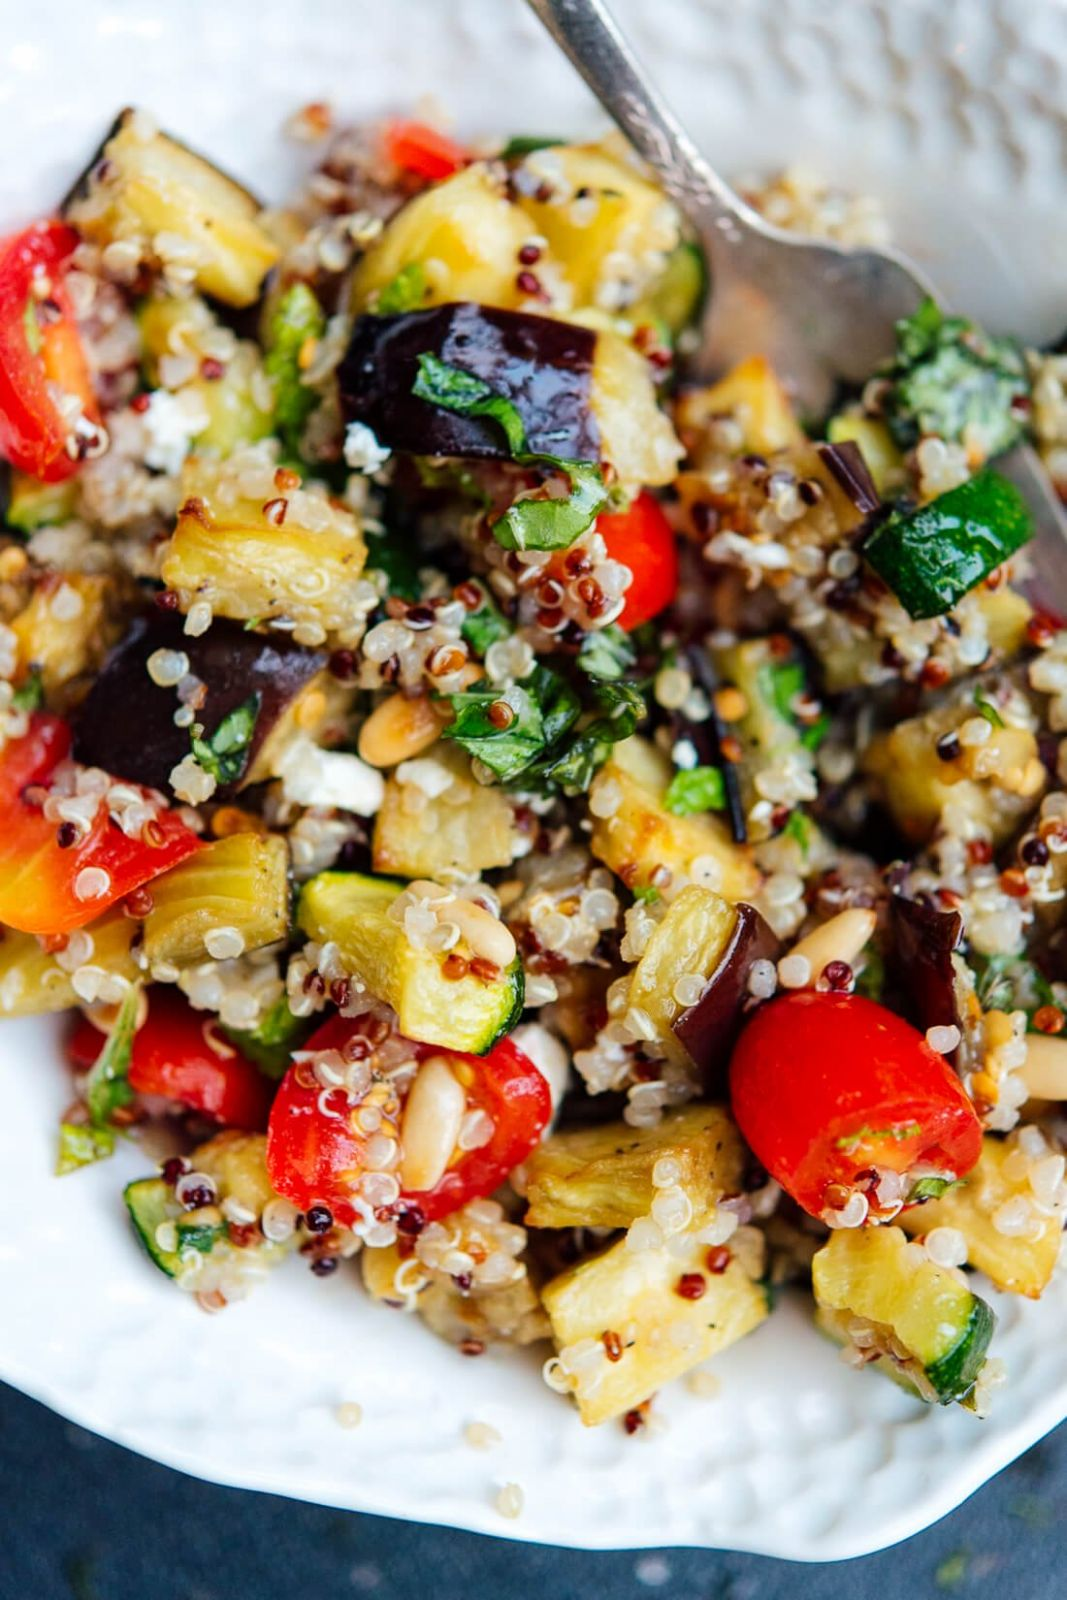 Mediterranean Quinoa Salad with Roasted Summer Vegetables - Salad Recipes Veg For Dinner